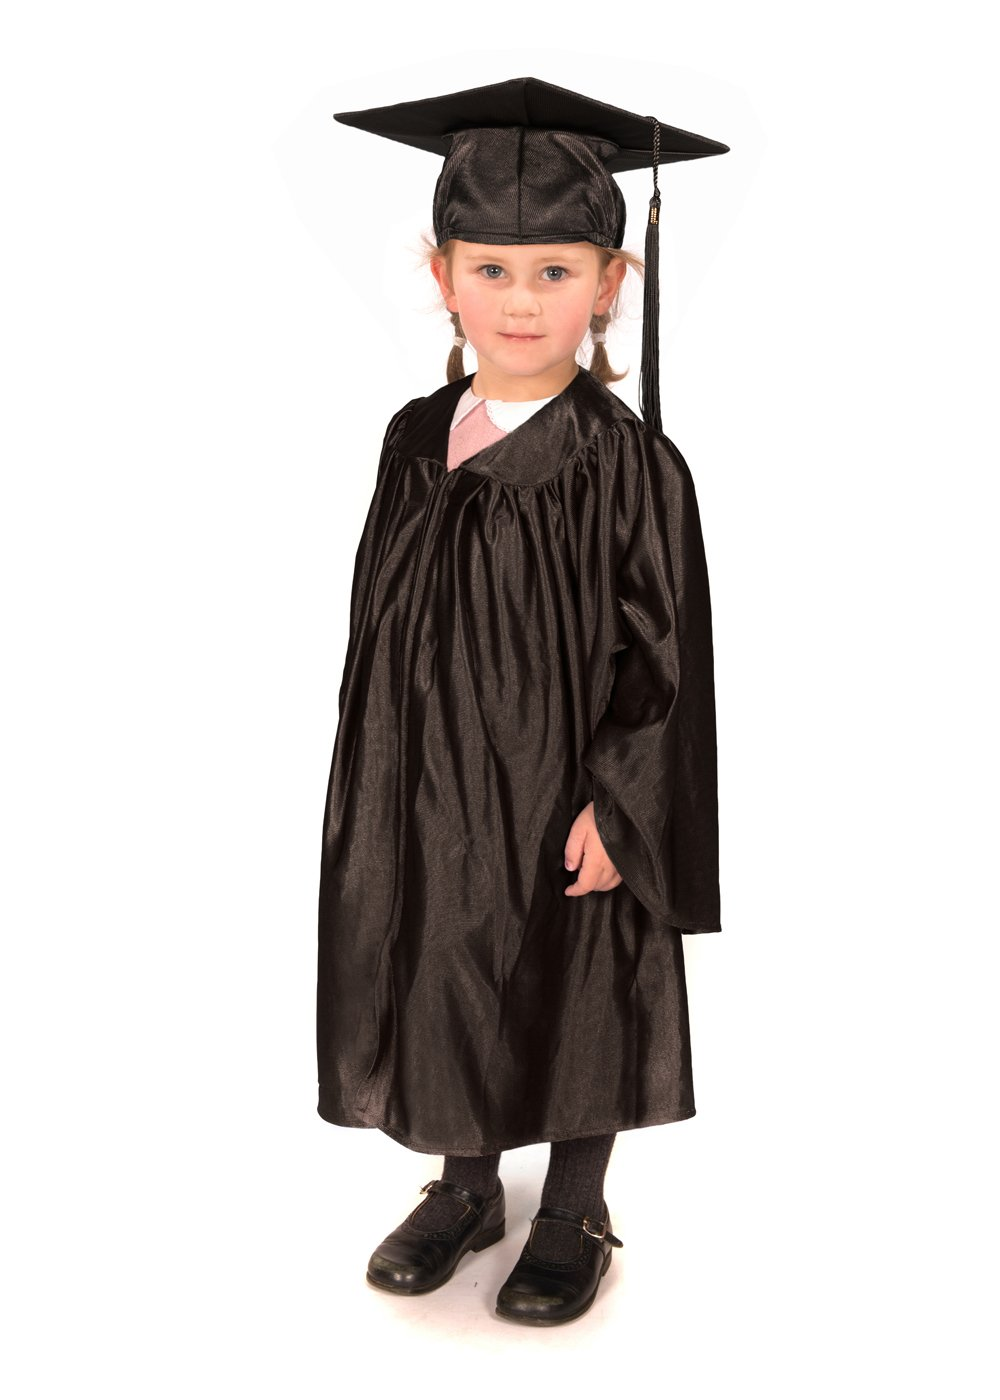 Childrens graduation gowns Black shiny look age 3-5 and matching cap